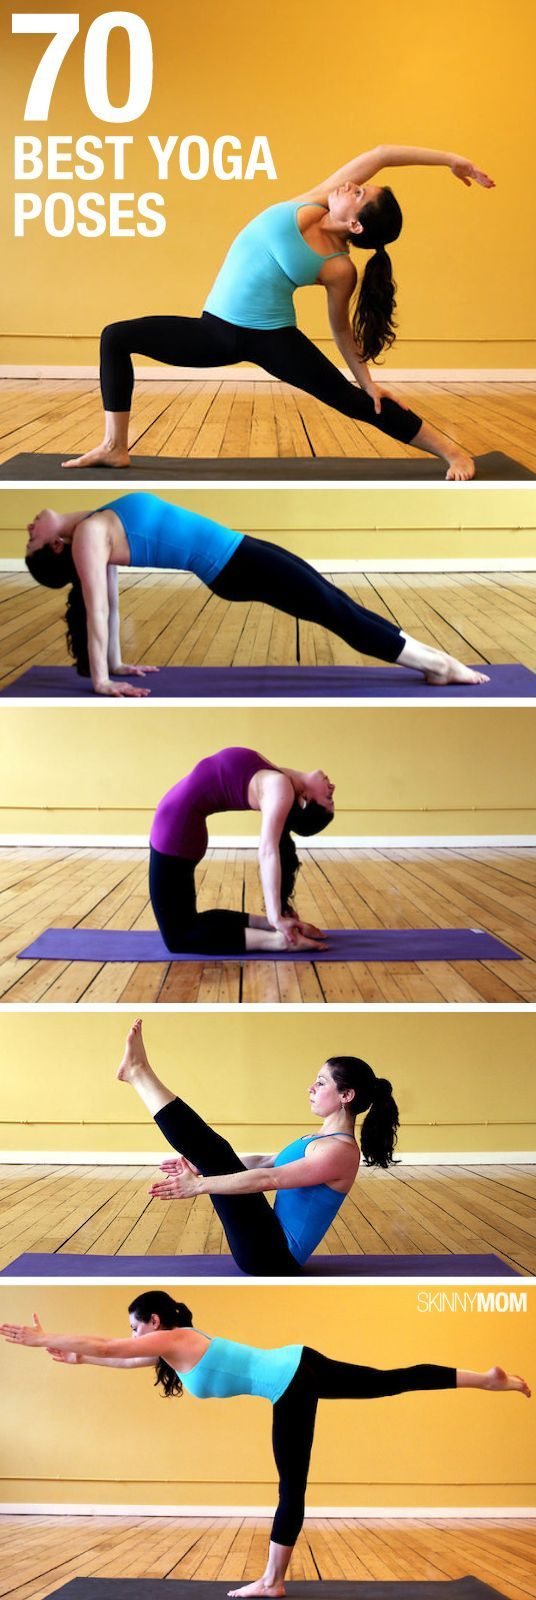 Love these yoga poses!